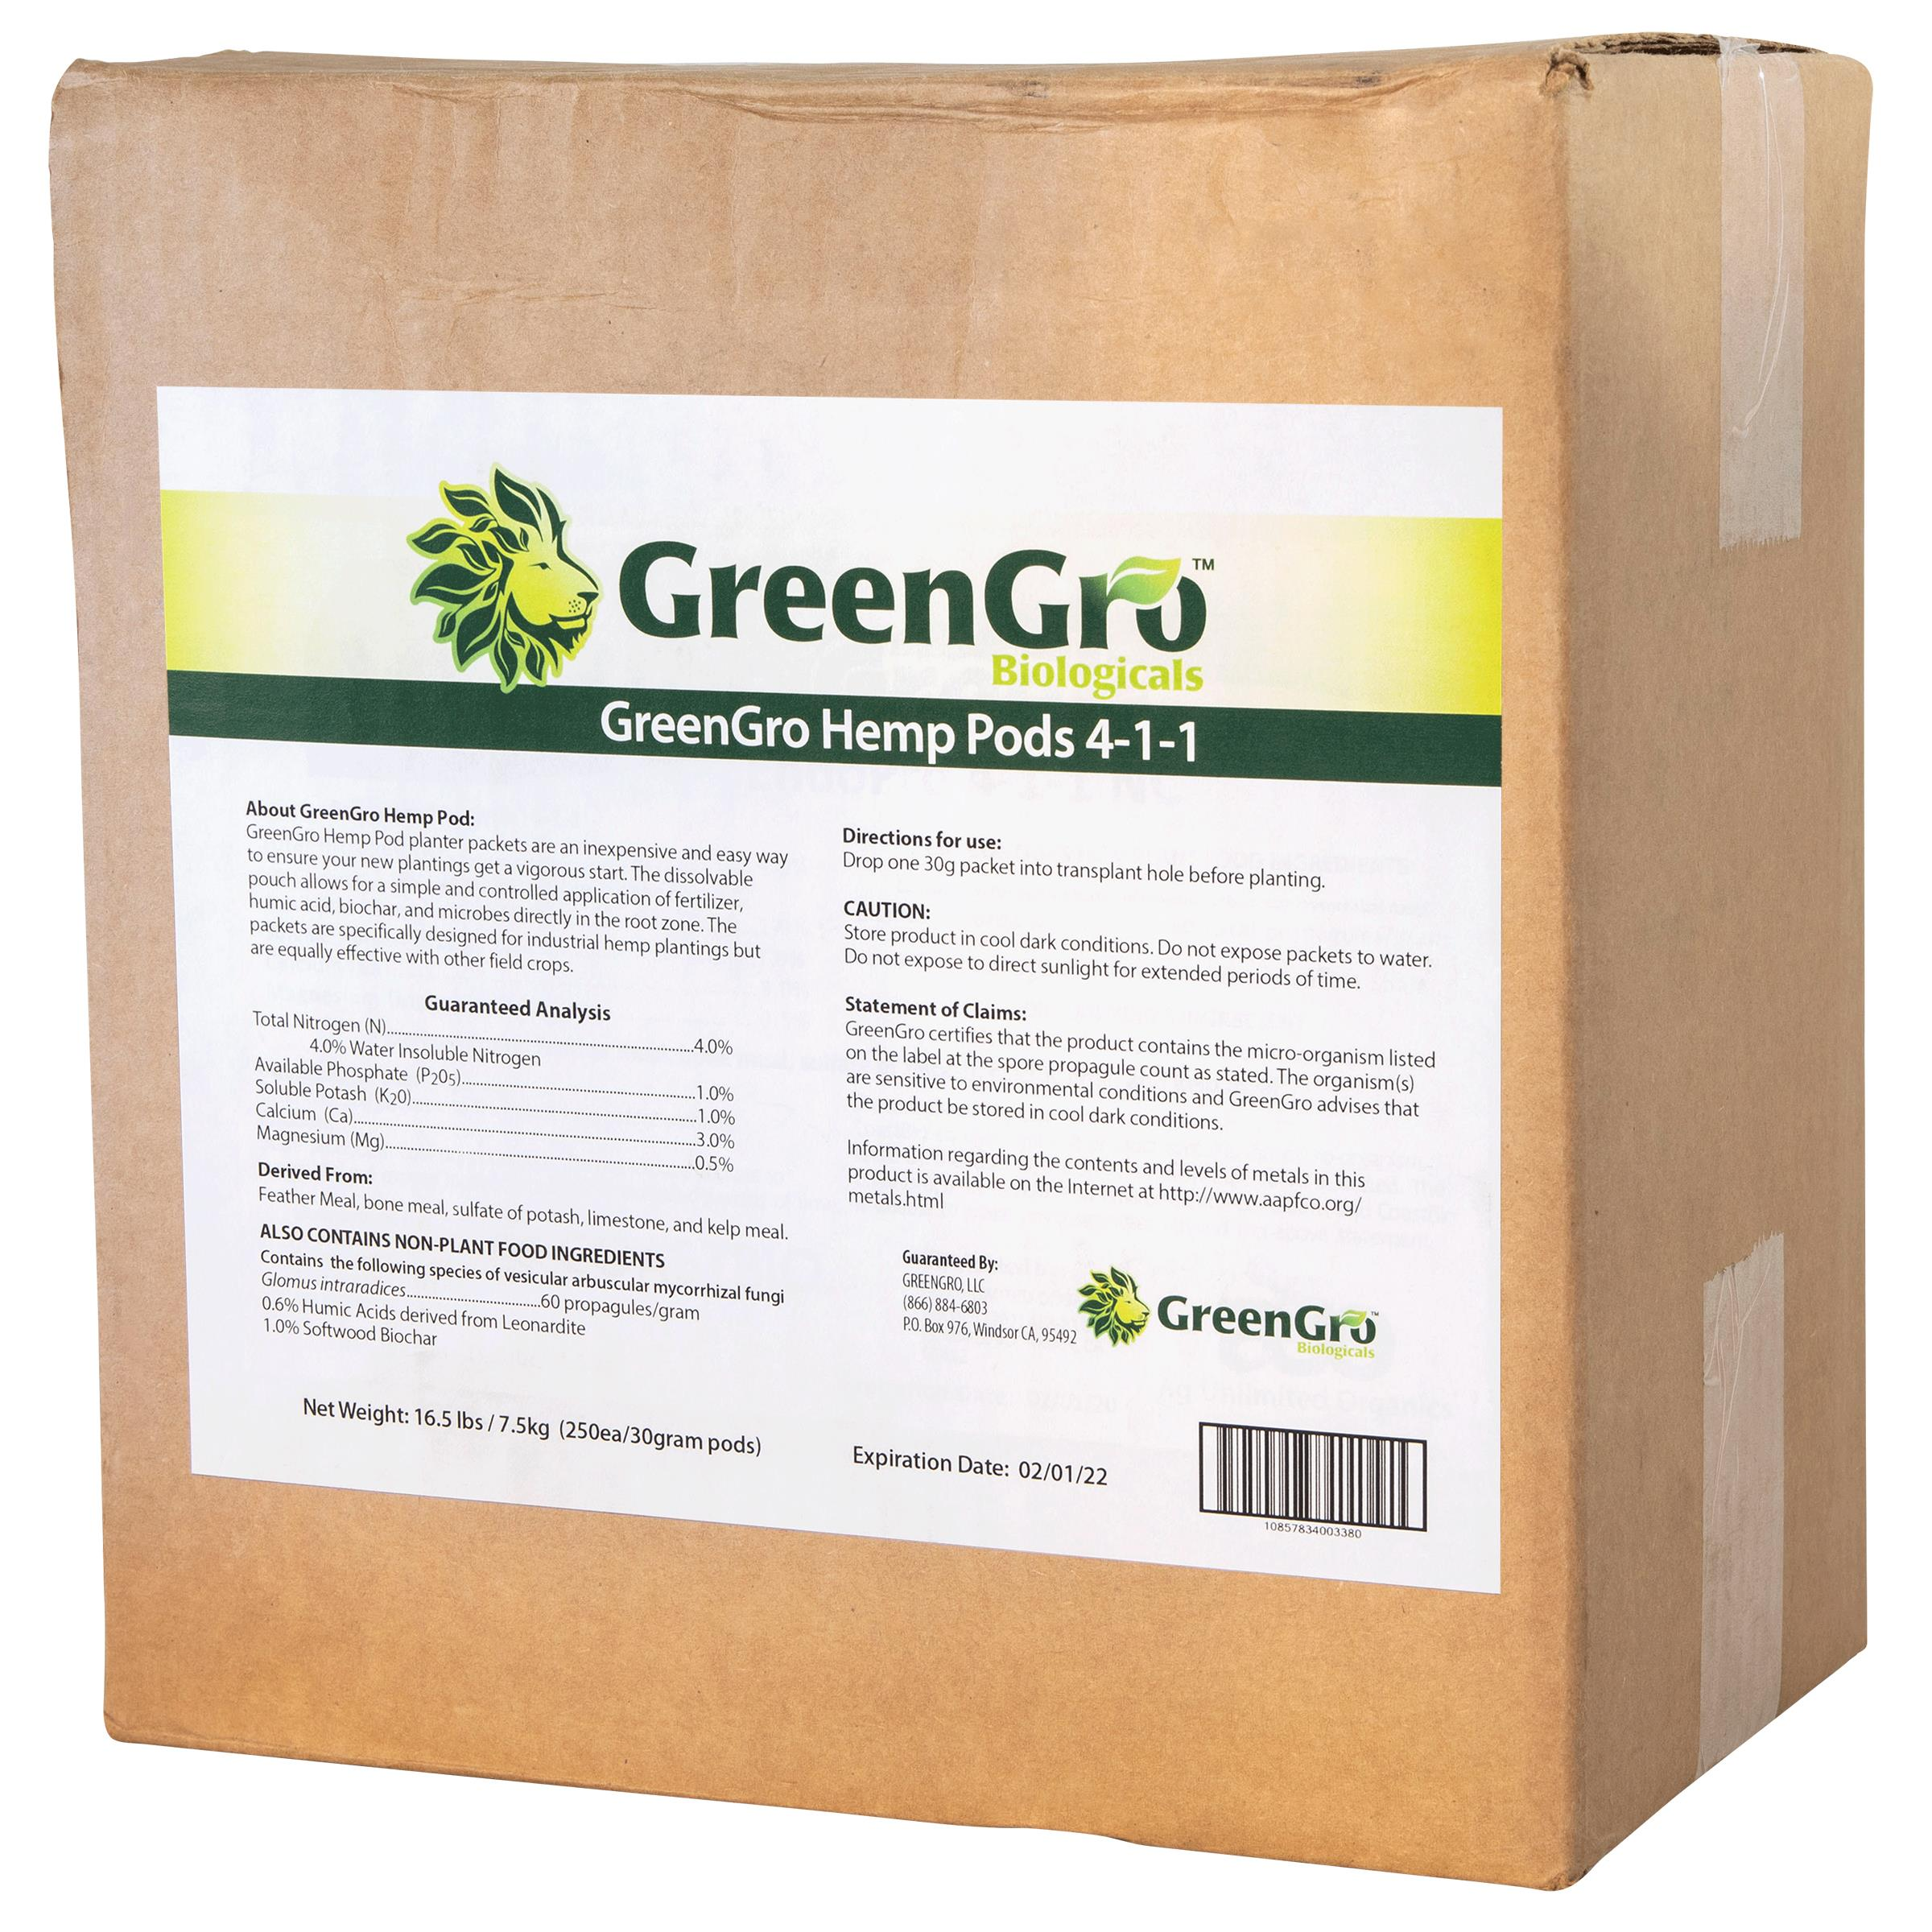 GreenGro™ Hemp Pods 4 - 1 - 1